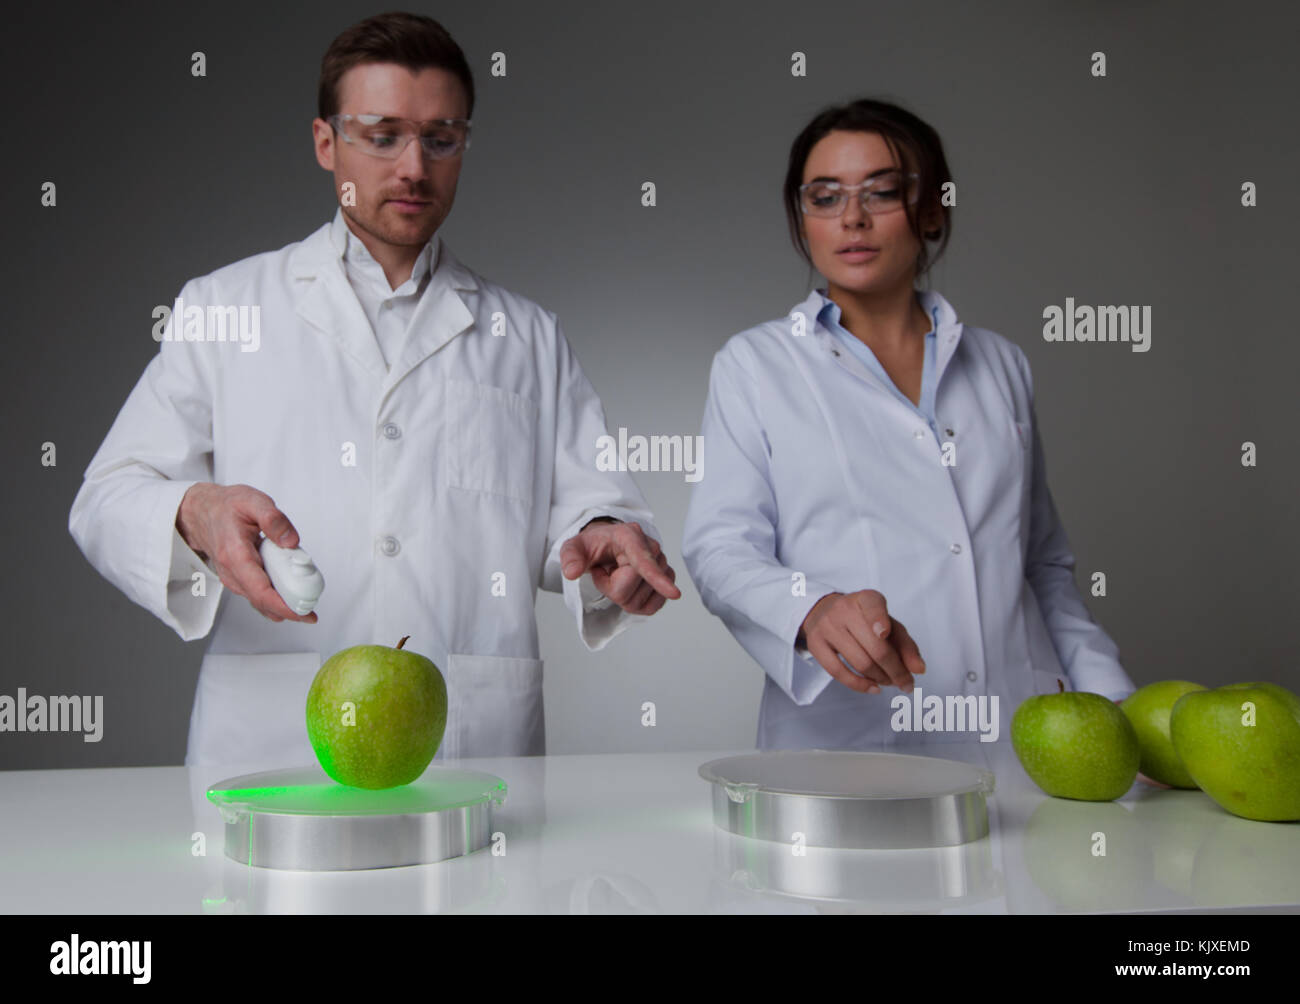 an analysis of the concept of a clone and cloning in medical research Cloning research is active in argentina, australia, brazil, china, france, germany, iran, japan, new zealand, turkey and the united kingdom the governments of france, new zealand and the european food safety authority have determined foods from cloned animals and their offspring are safe.